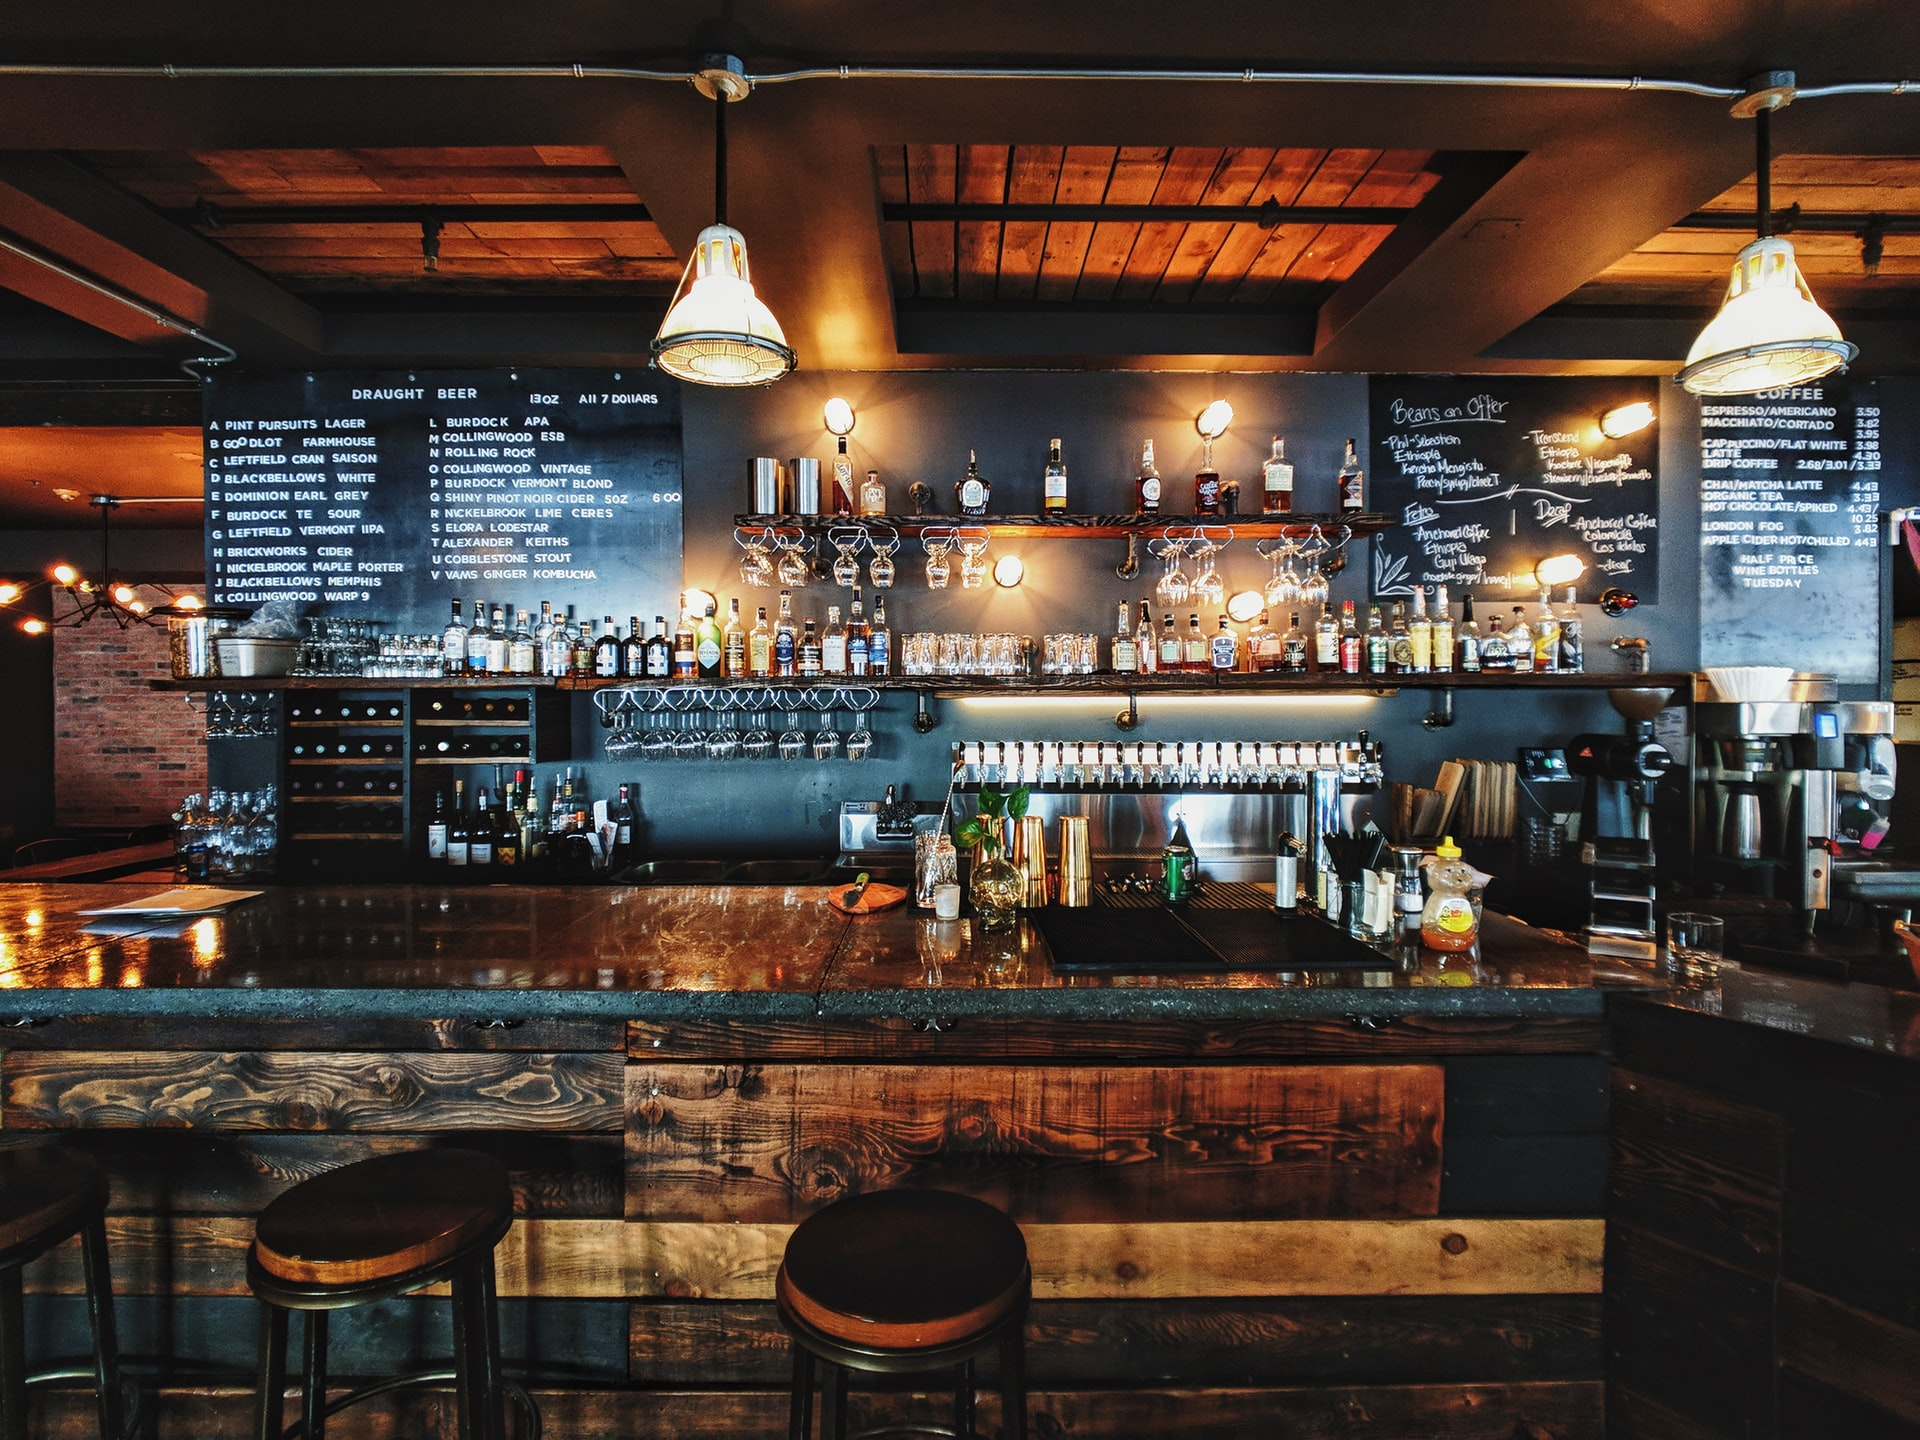 Empty Bar Photo by Patrick Tomasso on Unsplash